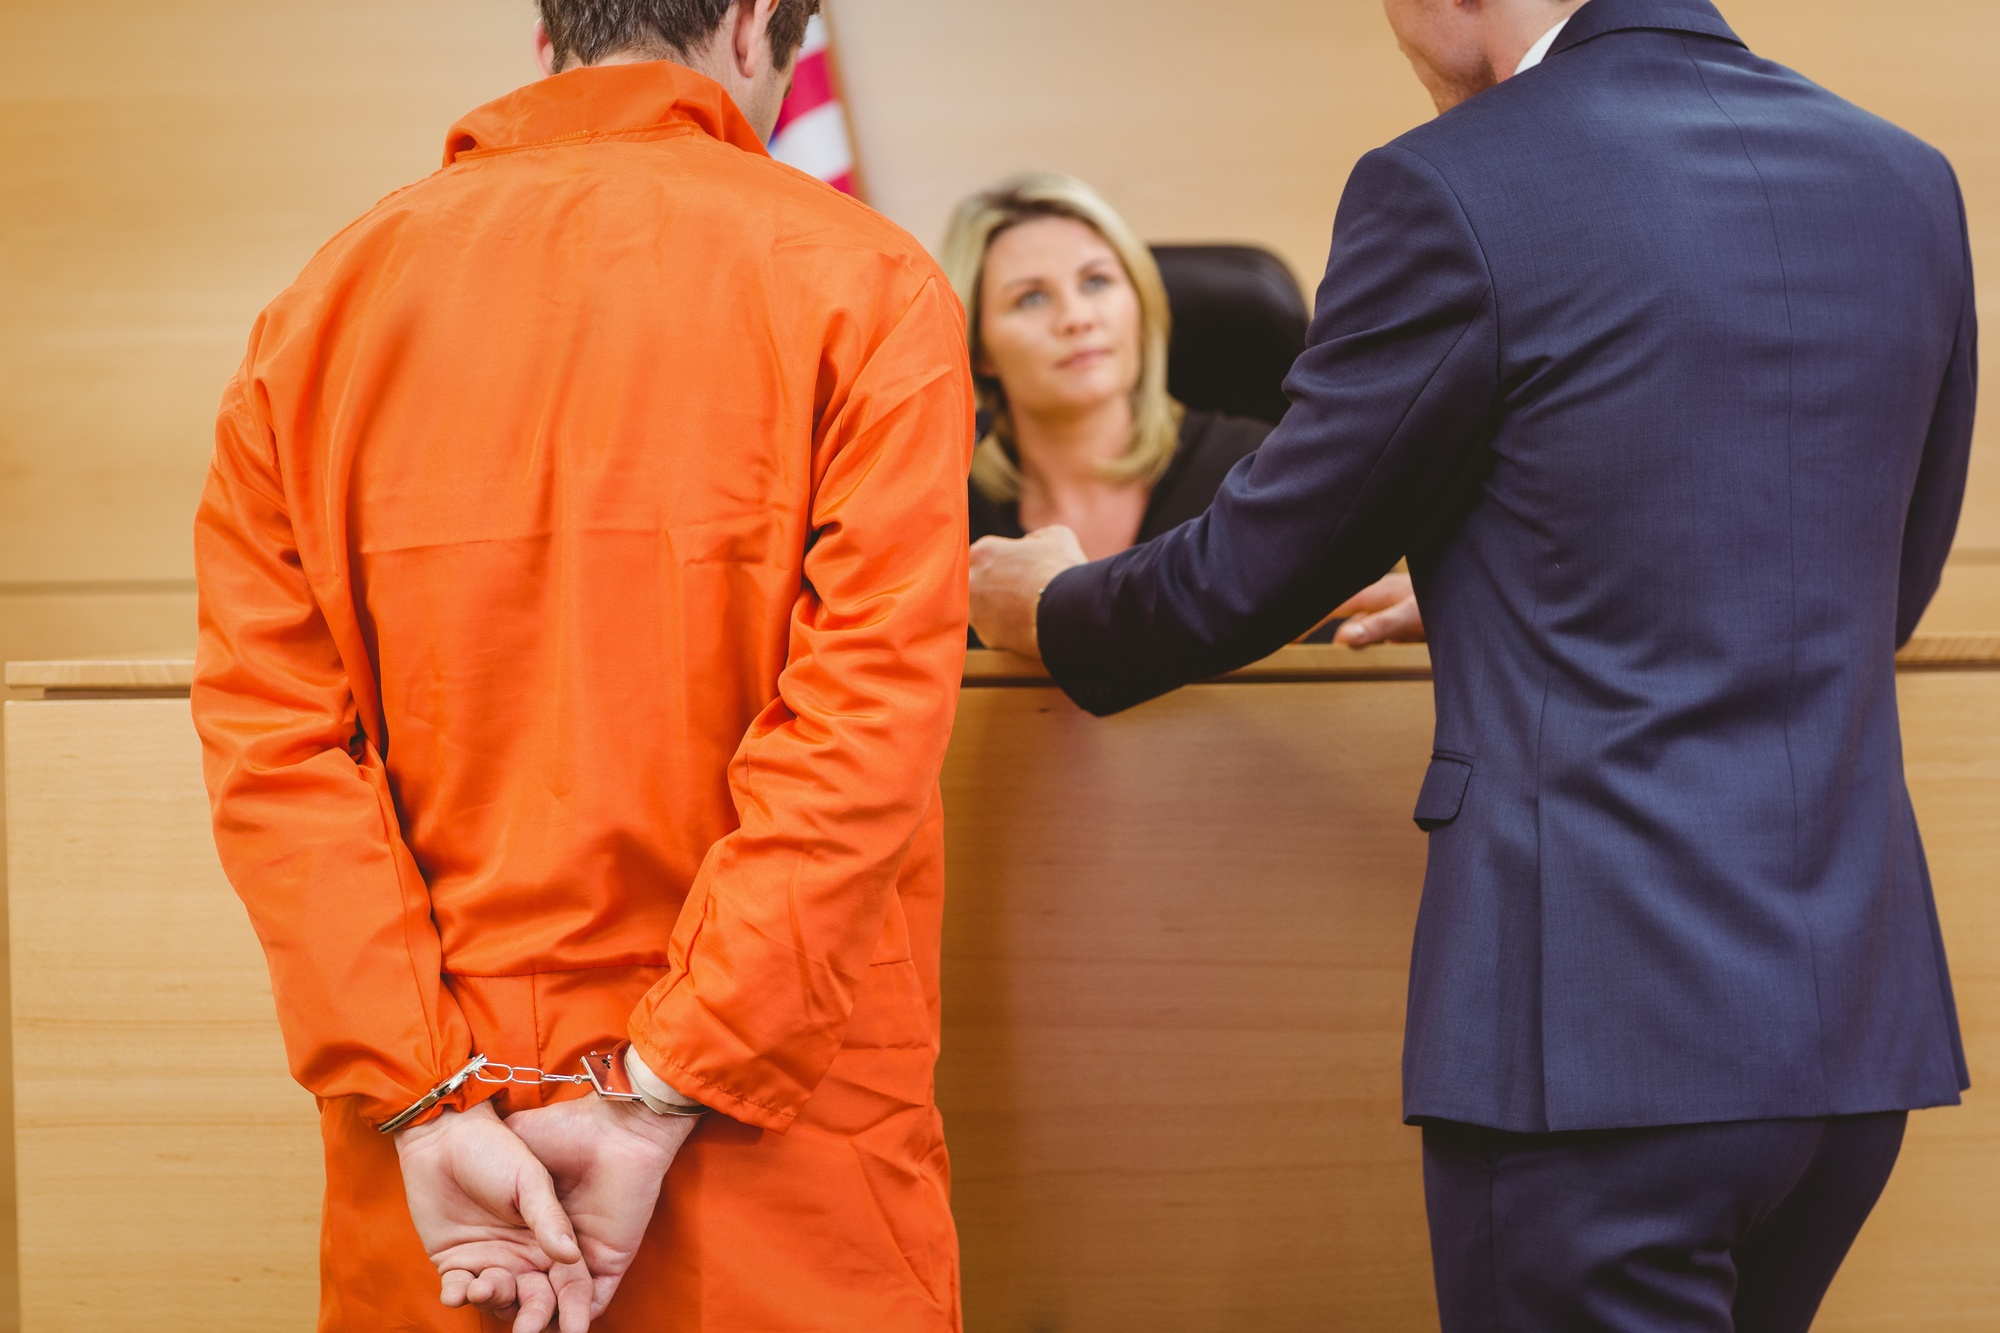 Can a Criminal Defense Attorney Help With a DWI Charge?